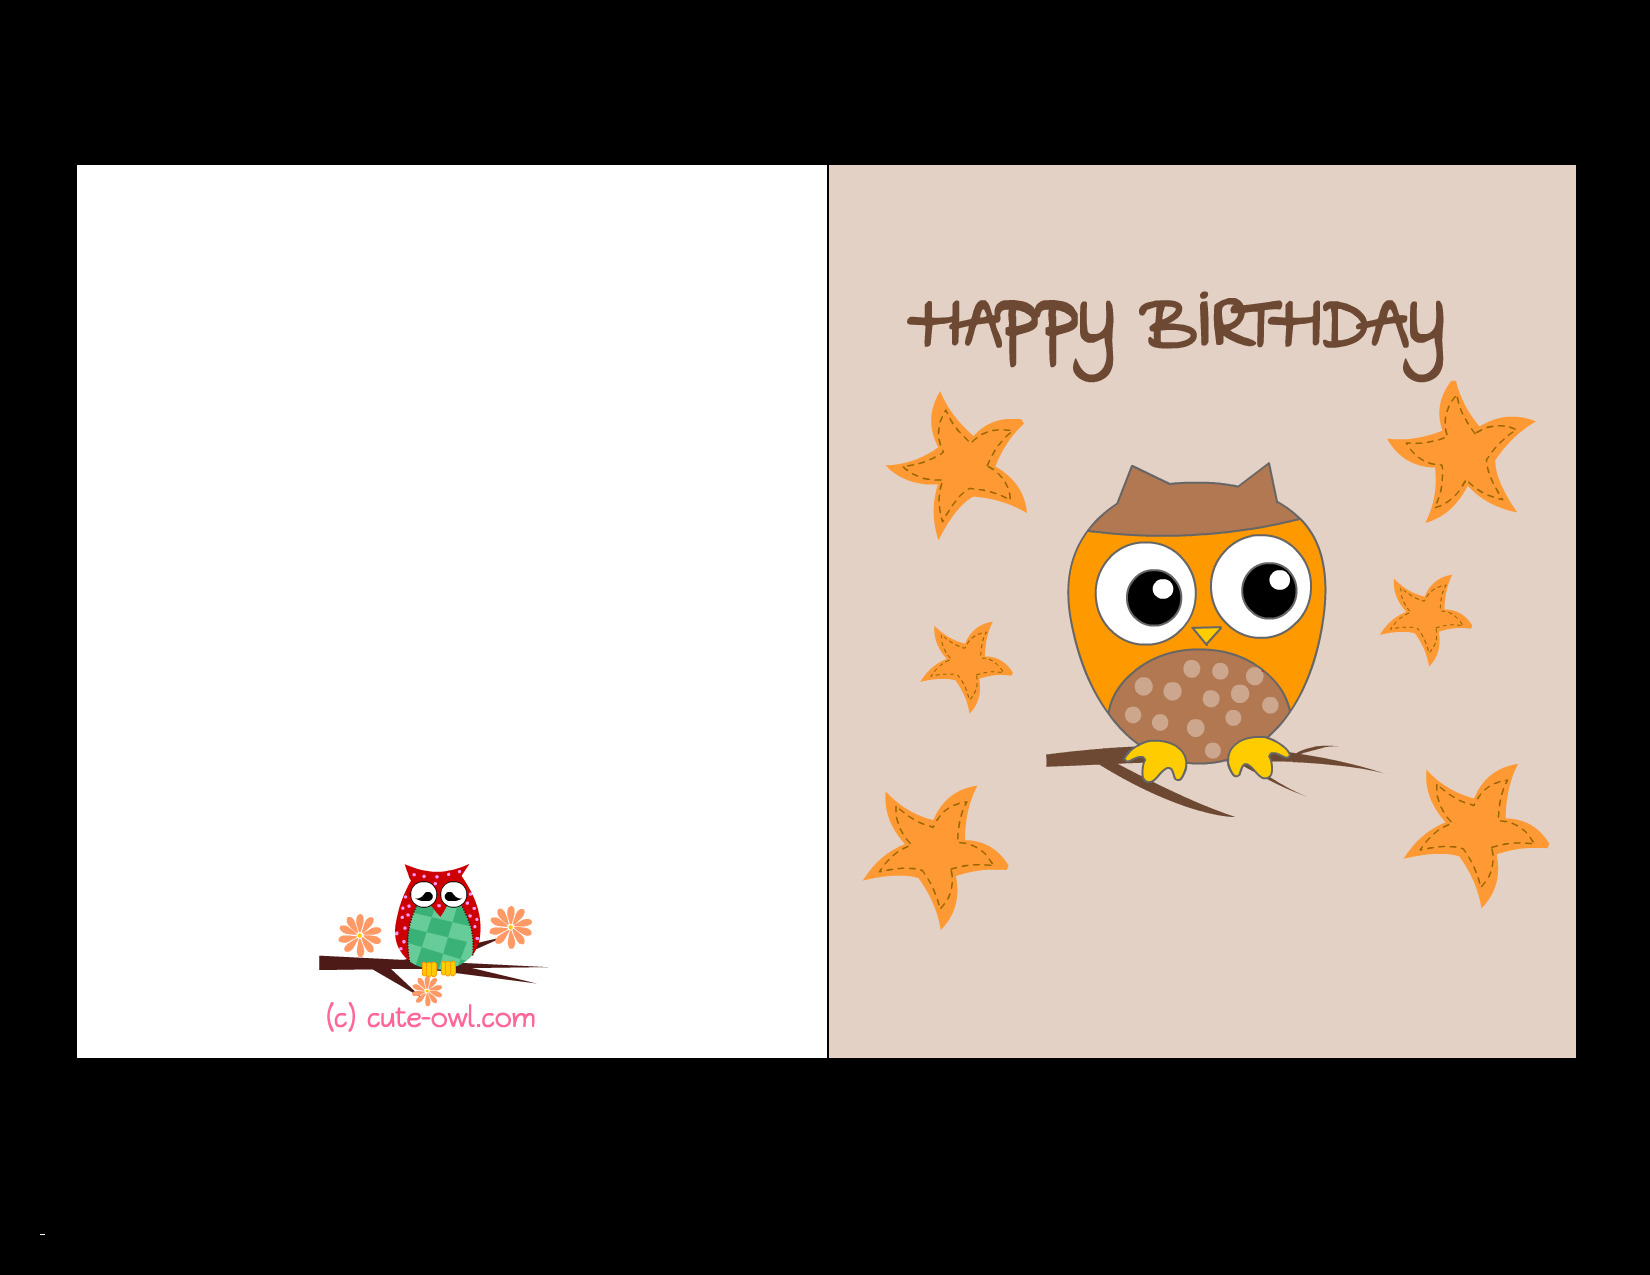 free printable bday cards ; greeting-cards-to-print-online-elegant-foldable-birthday-card-template-awesome-free-printable-birthday-of-greeting-cards-to-print-online